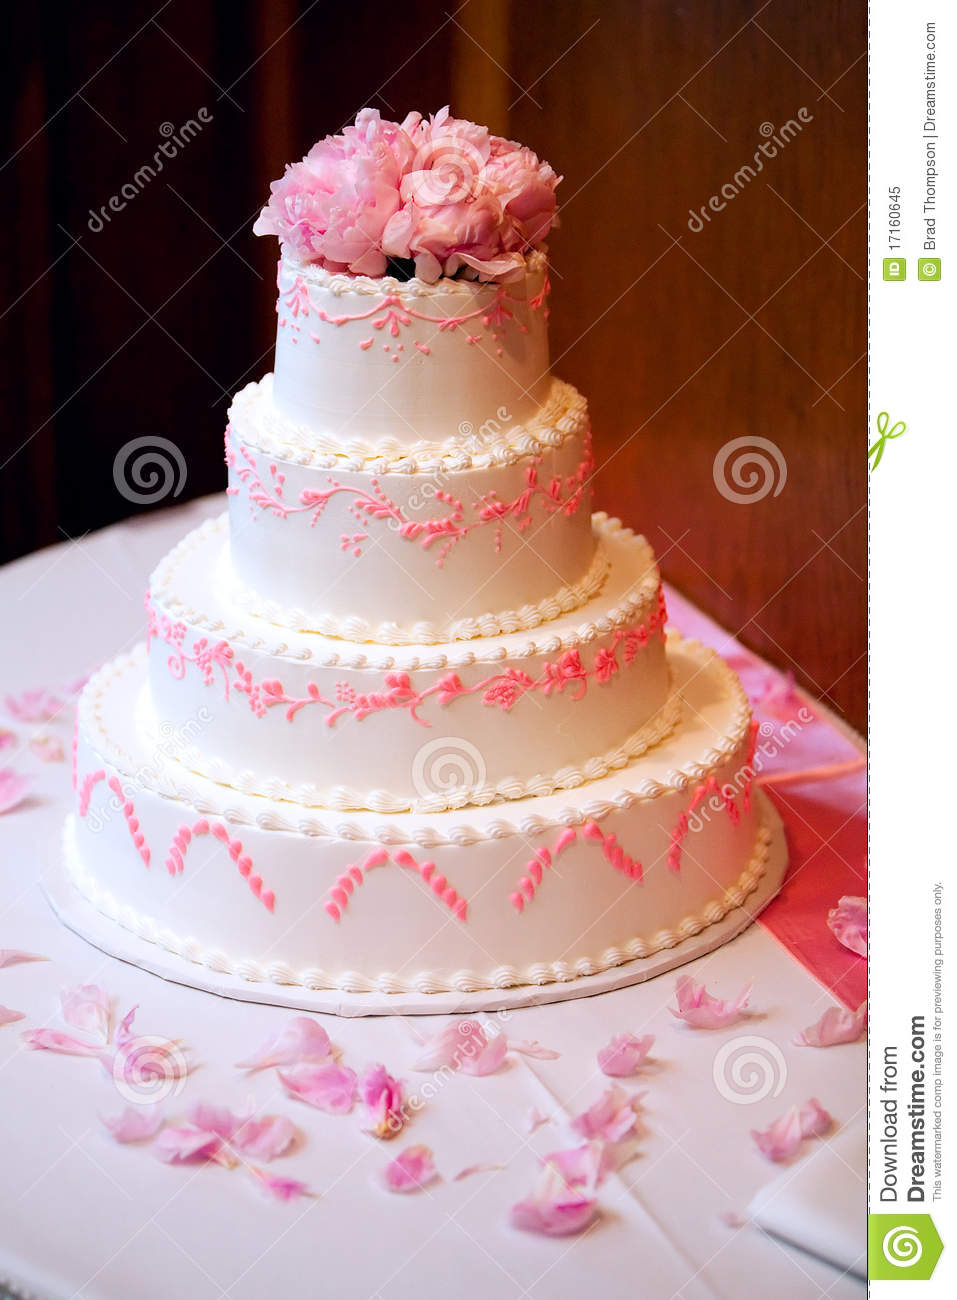 wedding cake roses pink pink tiered wedding cake with pink flowers stock image 23713